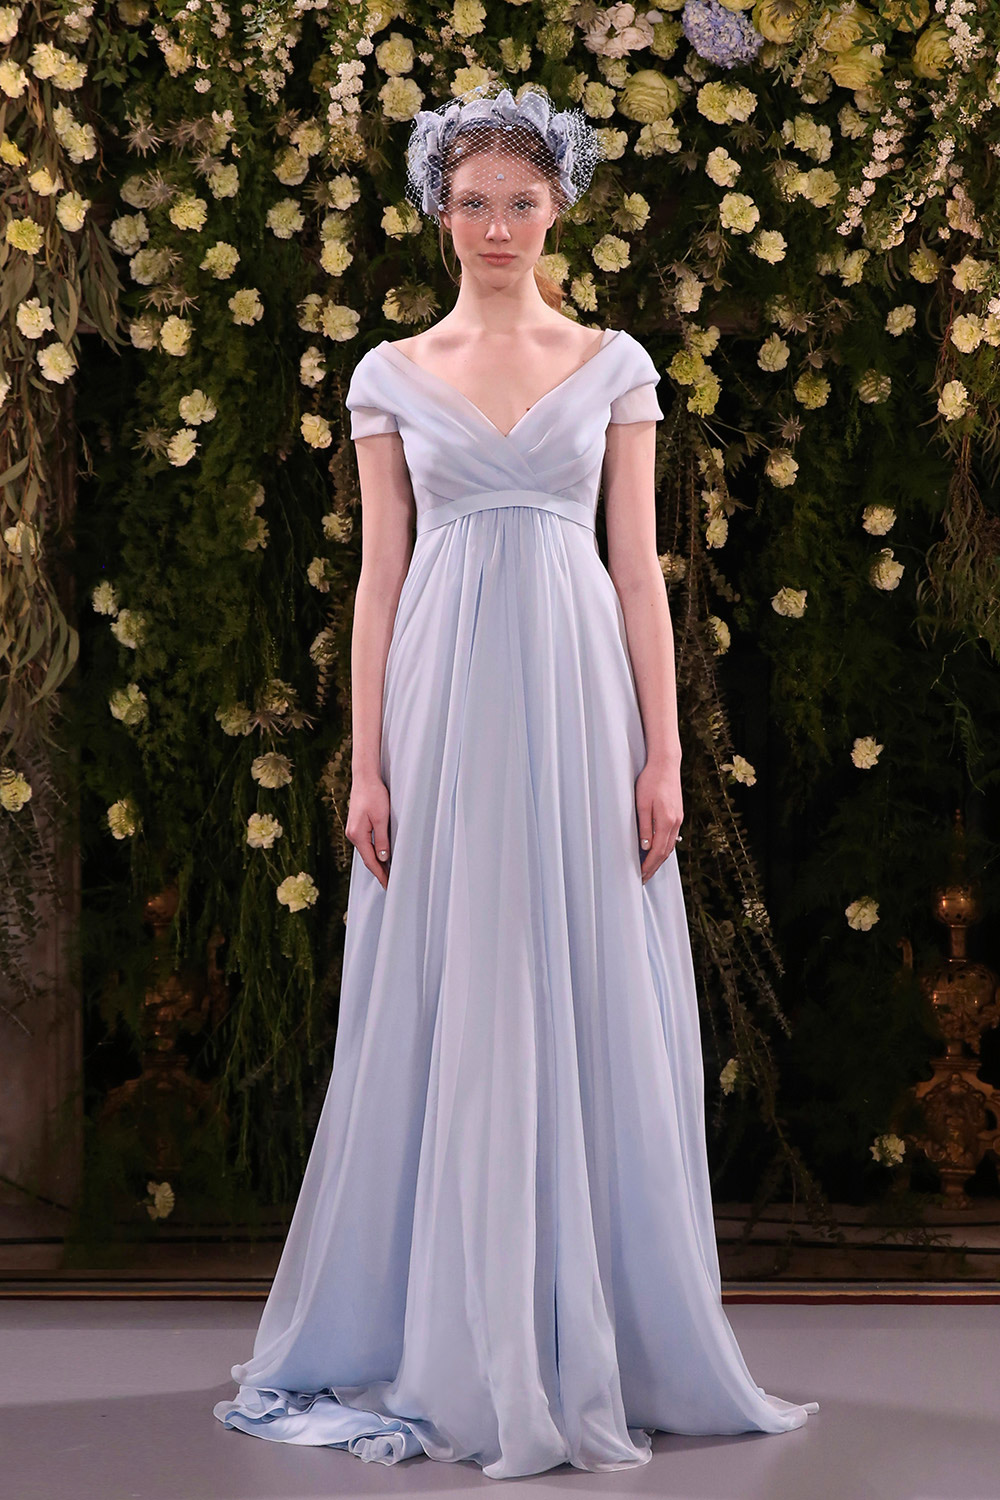 Sweet Pea – Jenny Packham 2019 Bridal Collection. www.theweddingnotebook.com